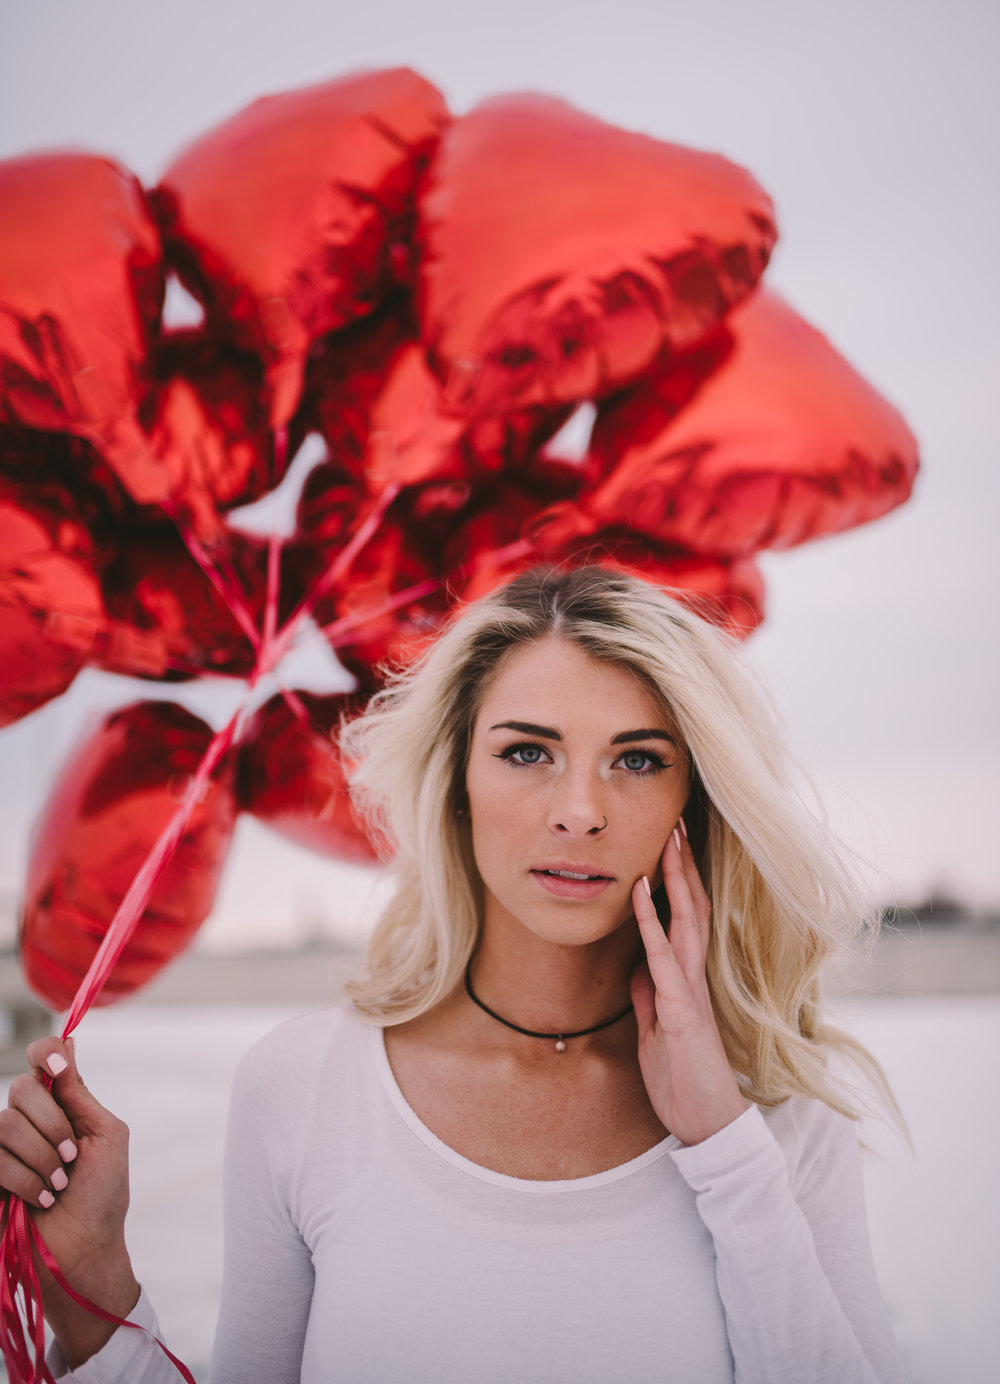 MakindsayCarper_Valentine'sDaySession_BallState_February2018_Senior Photography In Tempe_ArizonaSeniorPhotographer_SamanthaRosePhotography_final_-1.jpg